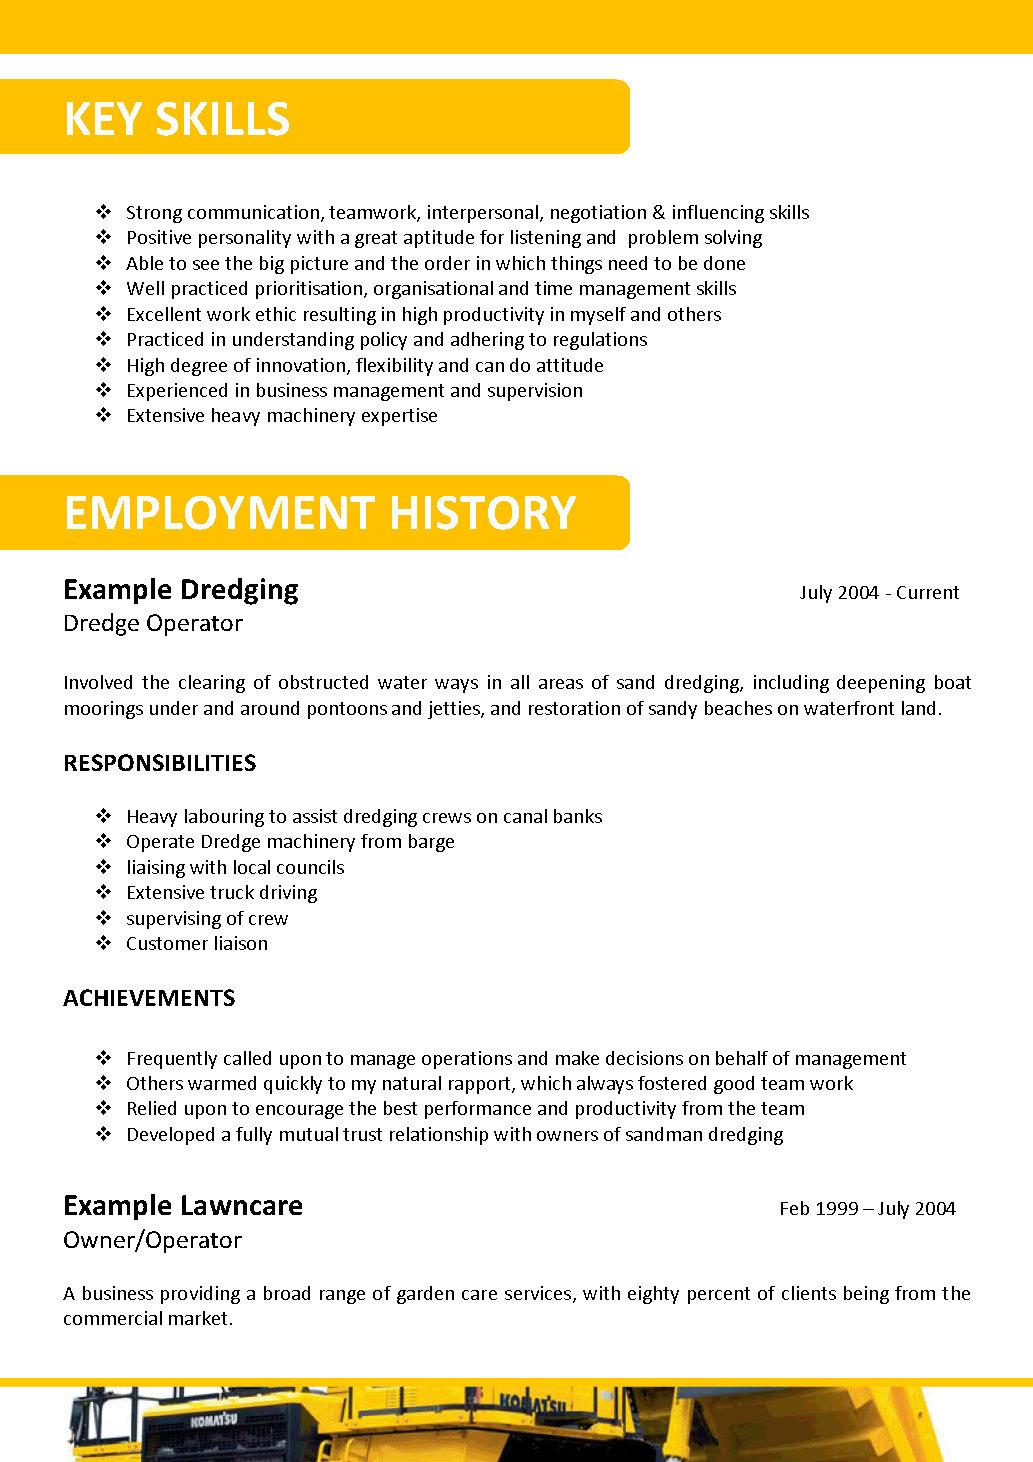 coal mining resume resume cover letters coal mining resume coal mining jobs mining employment careermine mining industry carrying out of coal mining